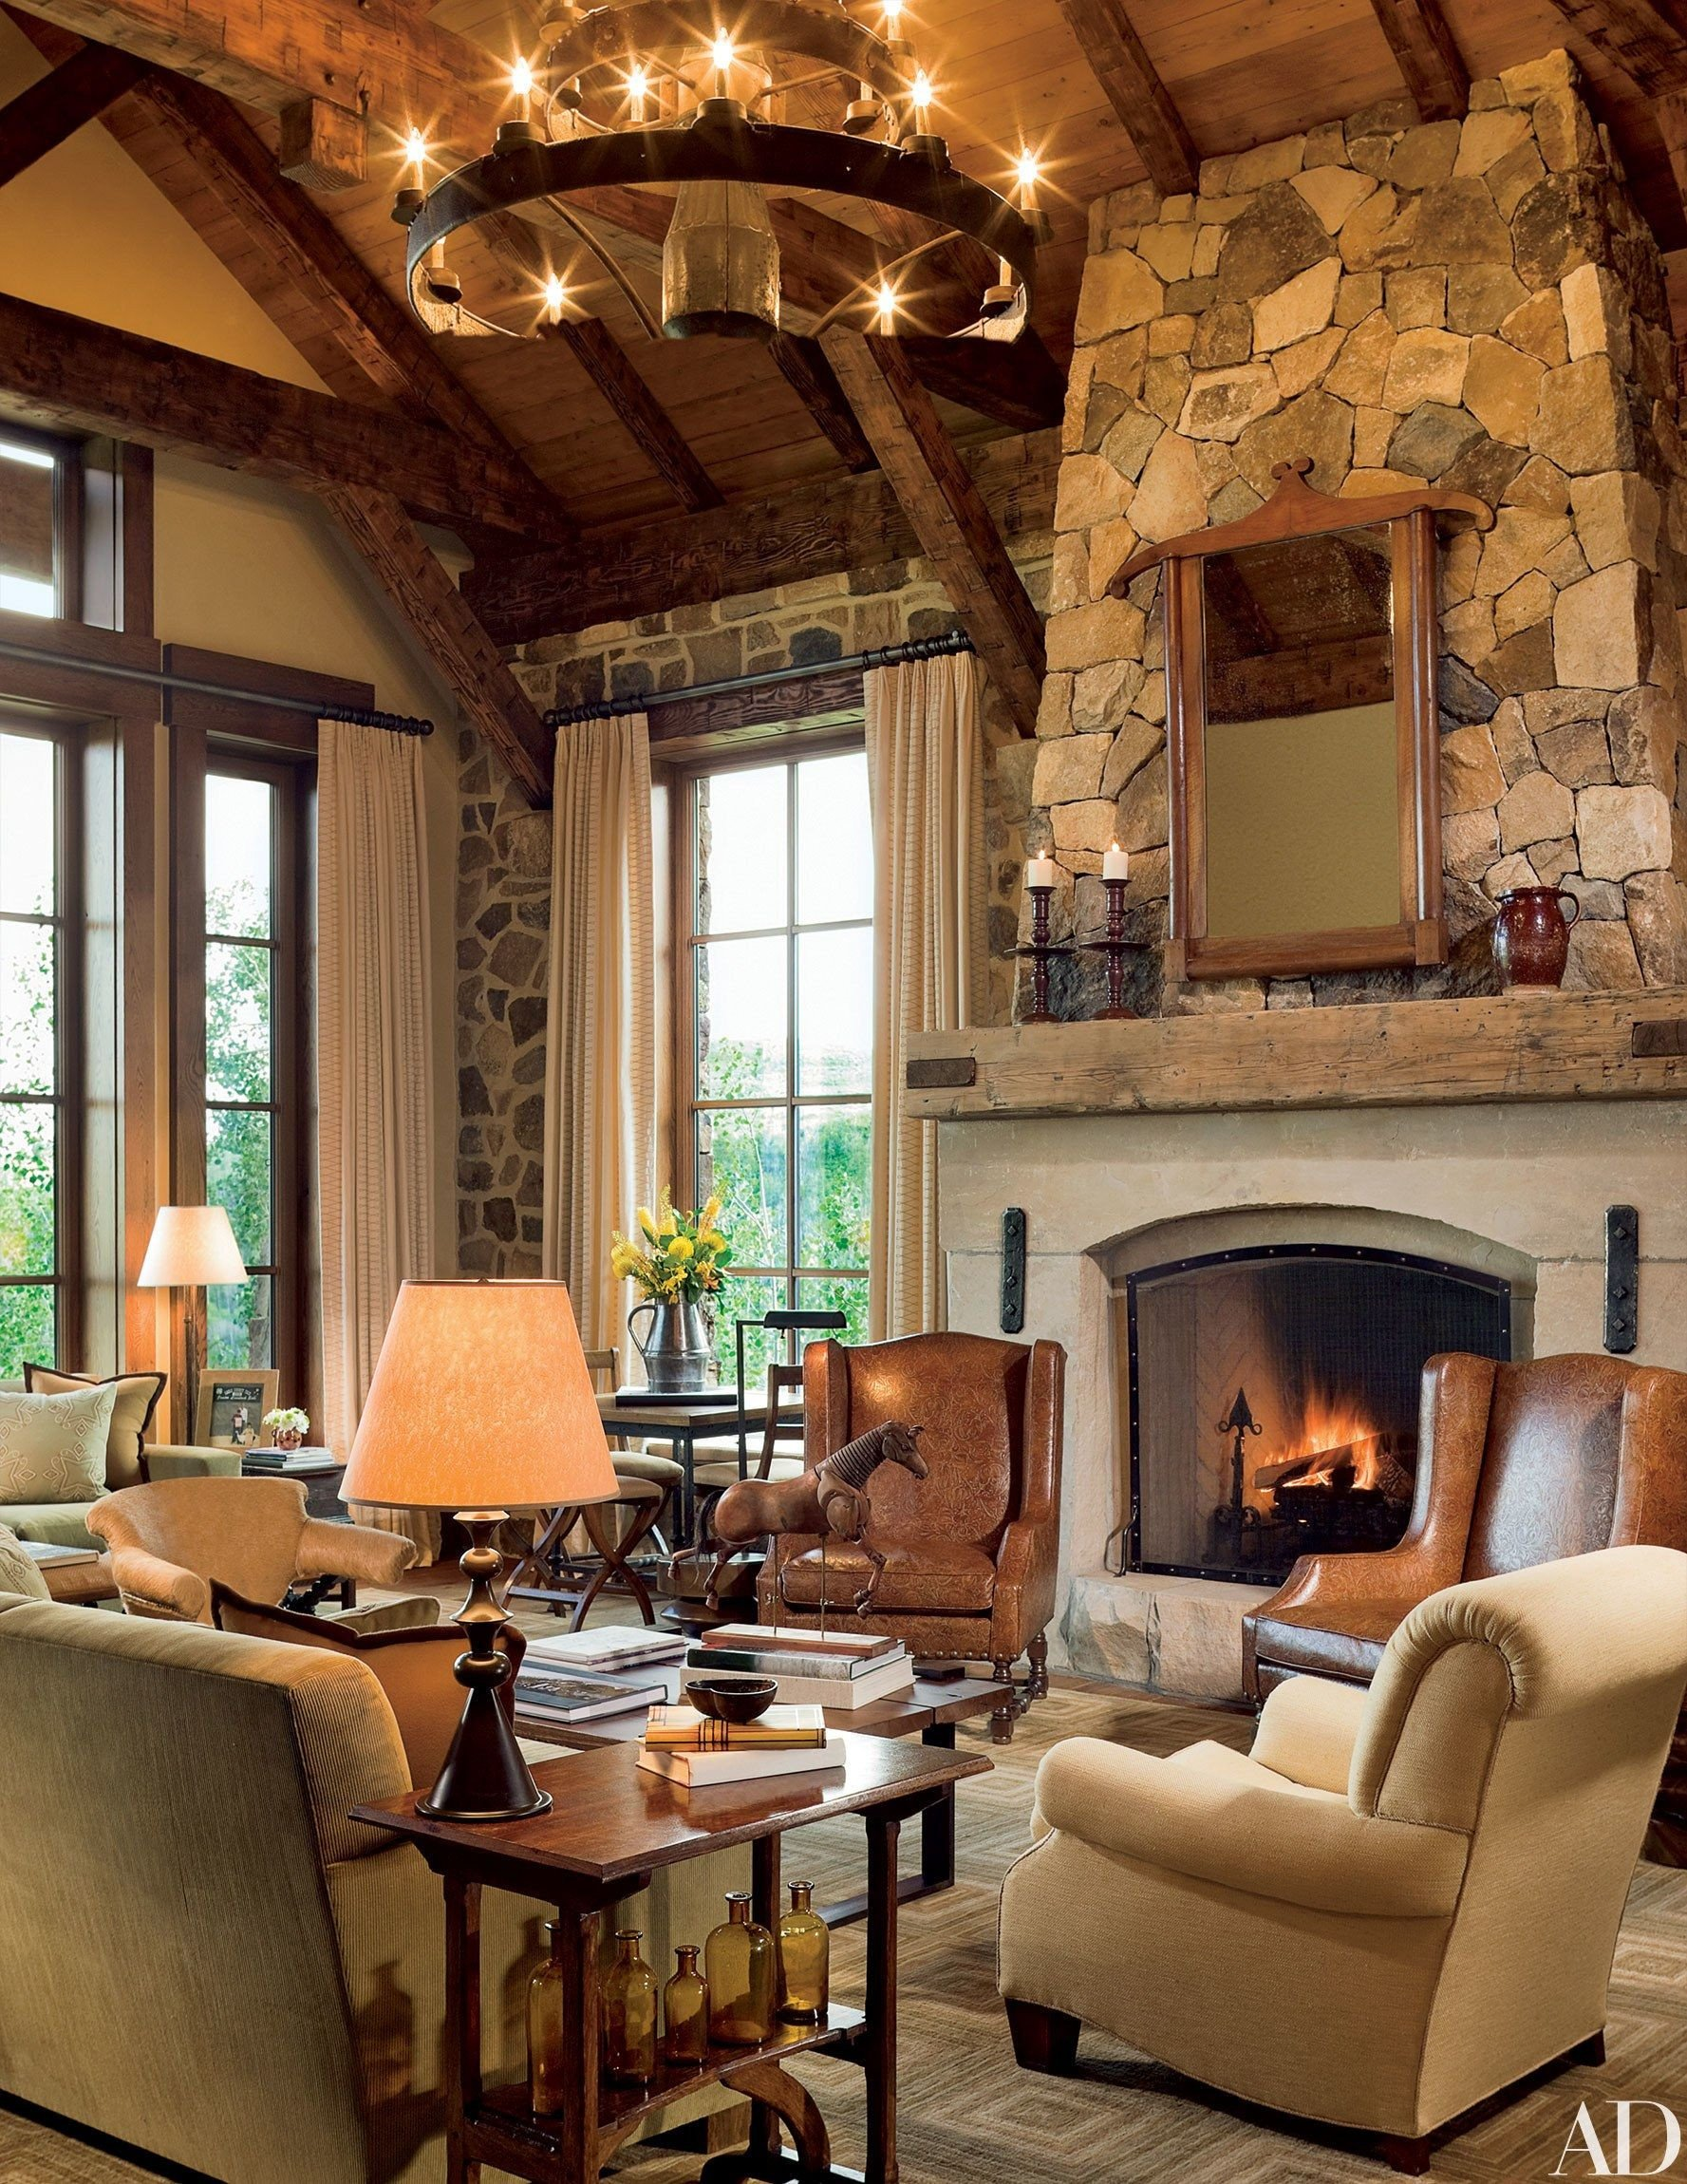 Ranch House Living Room Decorating Ideas Inspirational Ranch Homes that Evoke Classic Country Style Luxurious Livin